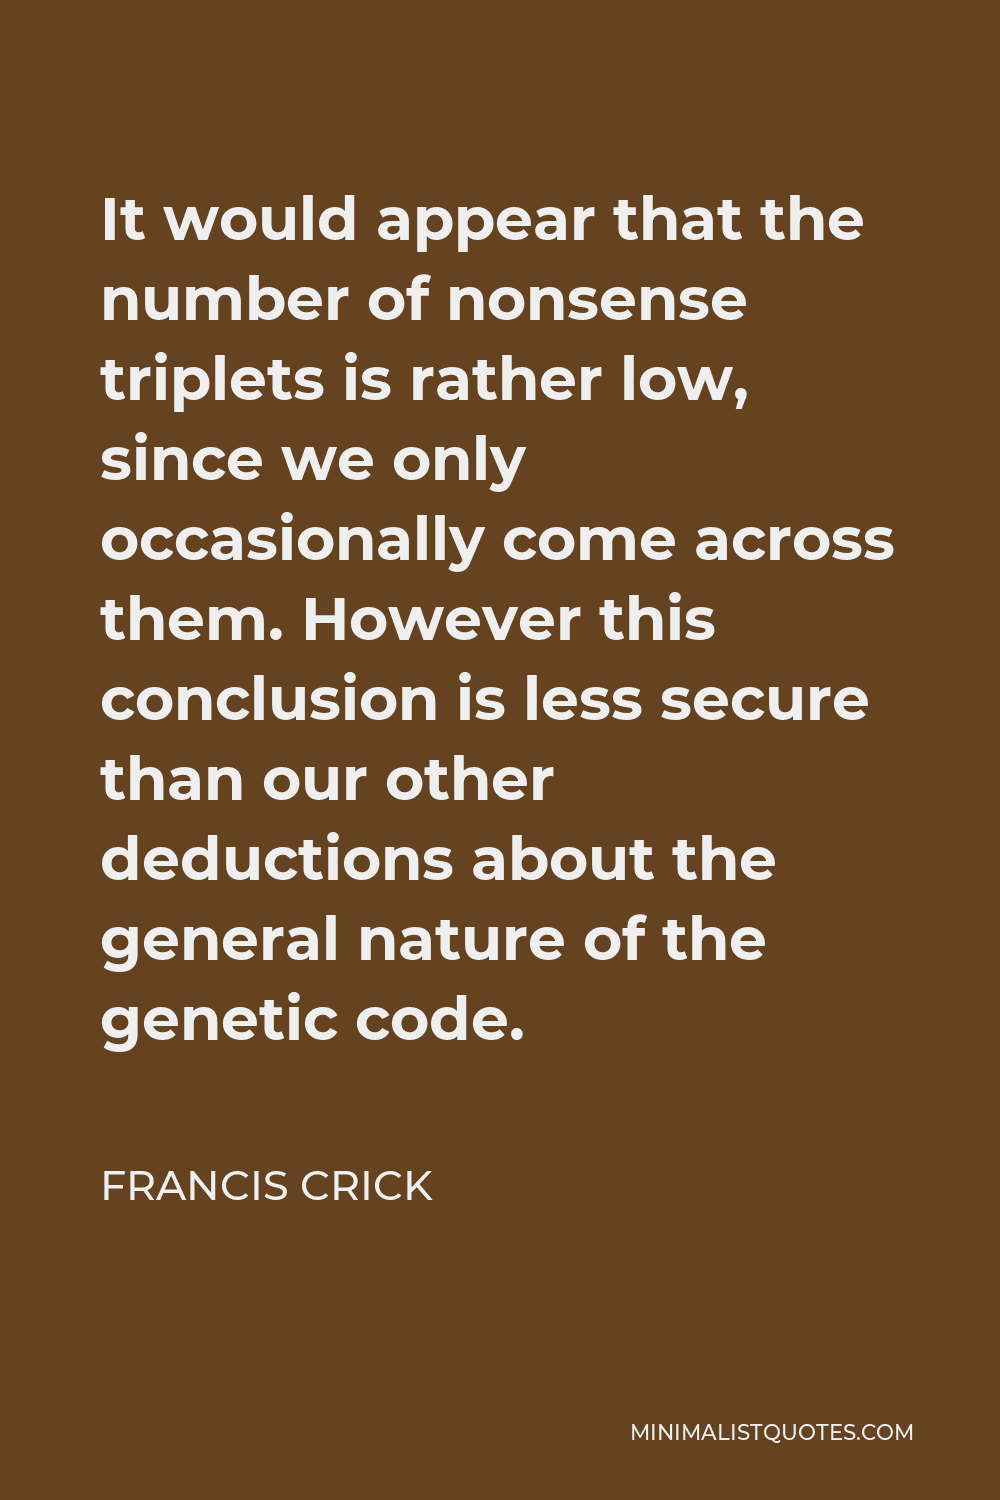 Francis Crick Quote - It would appear that the number of nonsense triplets is rather low, since we only occasionally come across them. However this conclusion is less secure than our other deductions about the general nature of the genetic code.